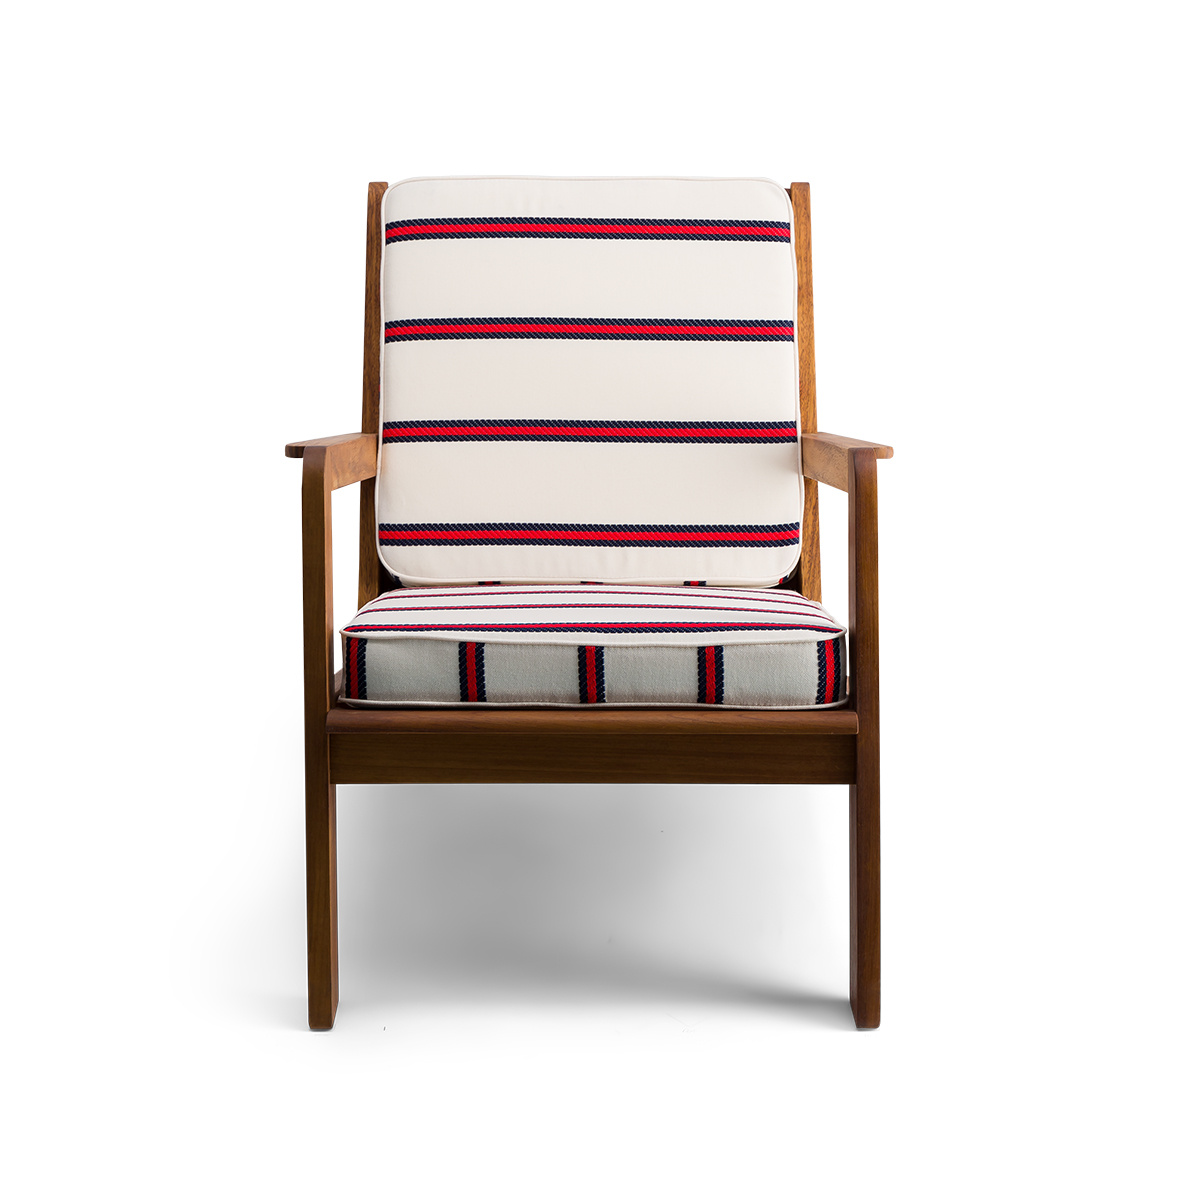 Gloria fireside chair brown wood, striped navy red Dedar fabric